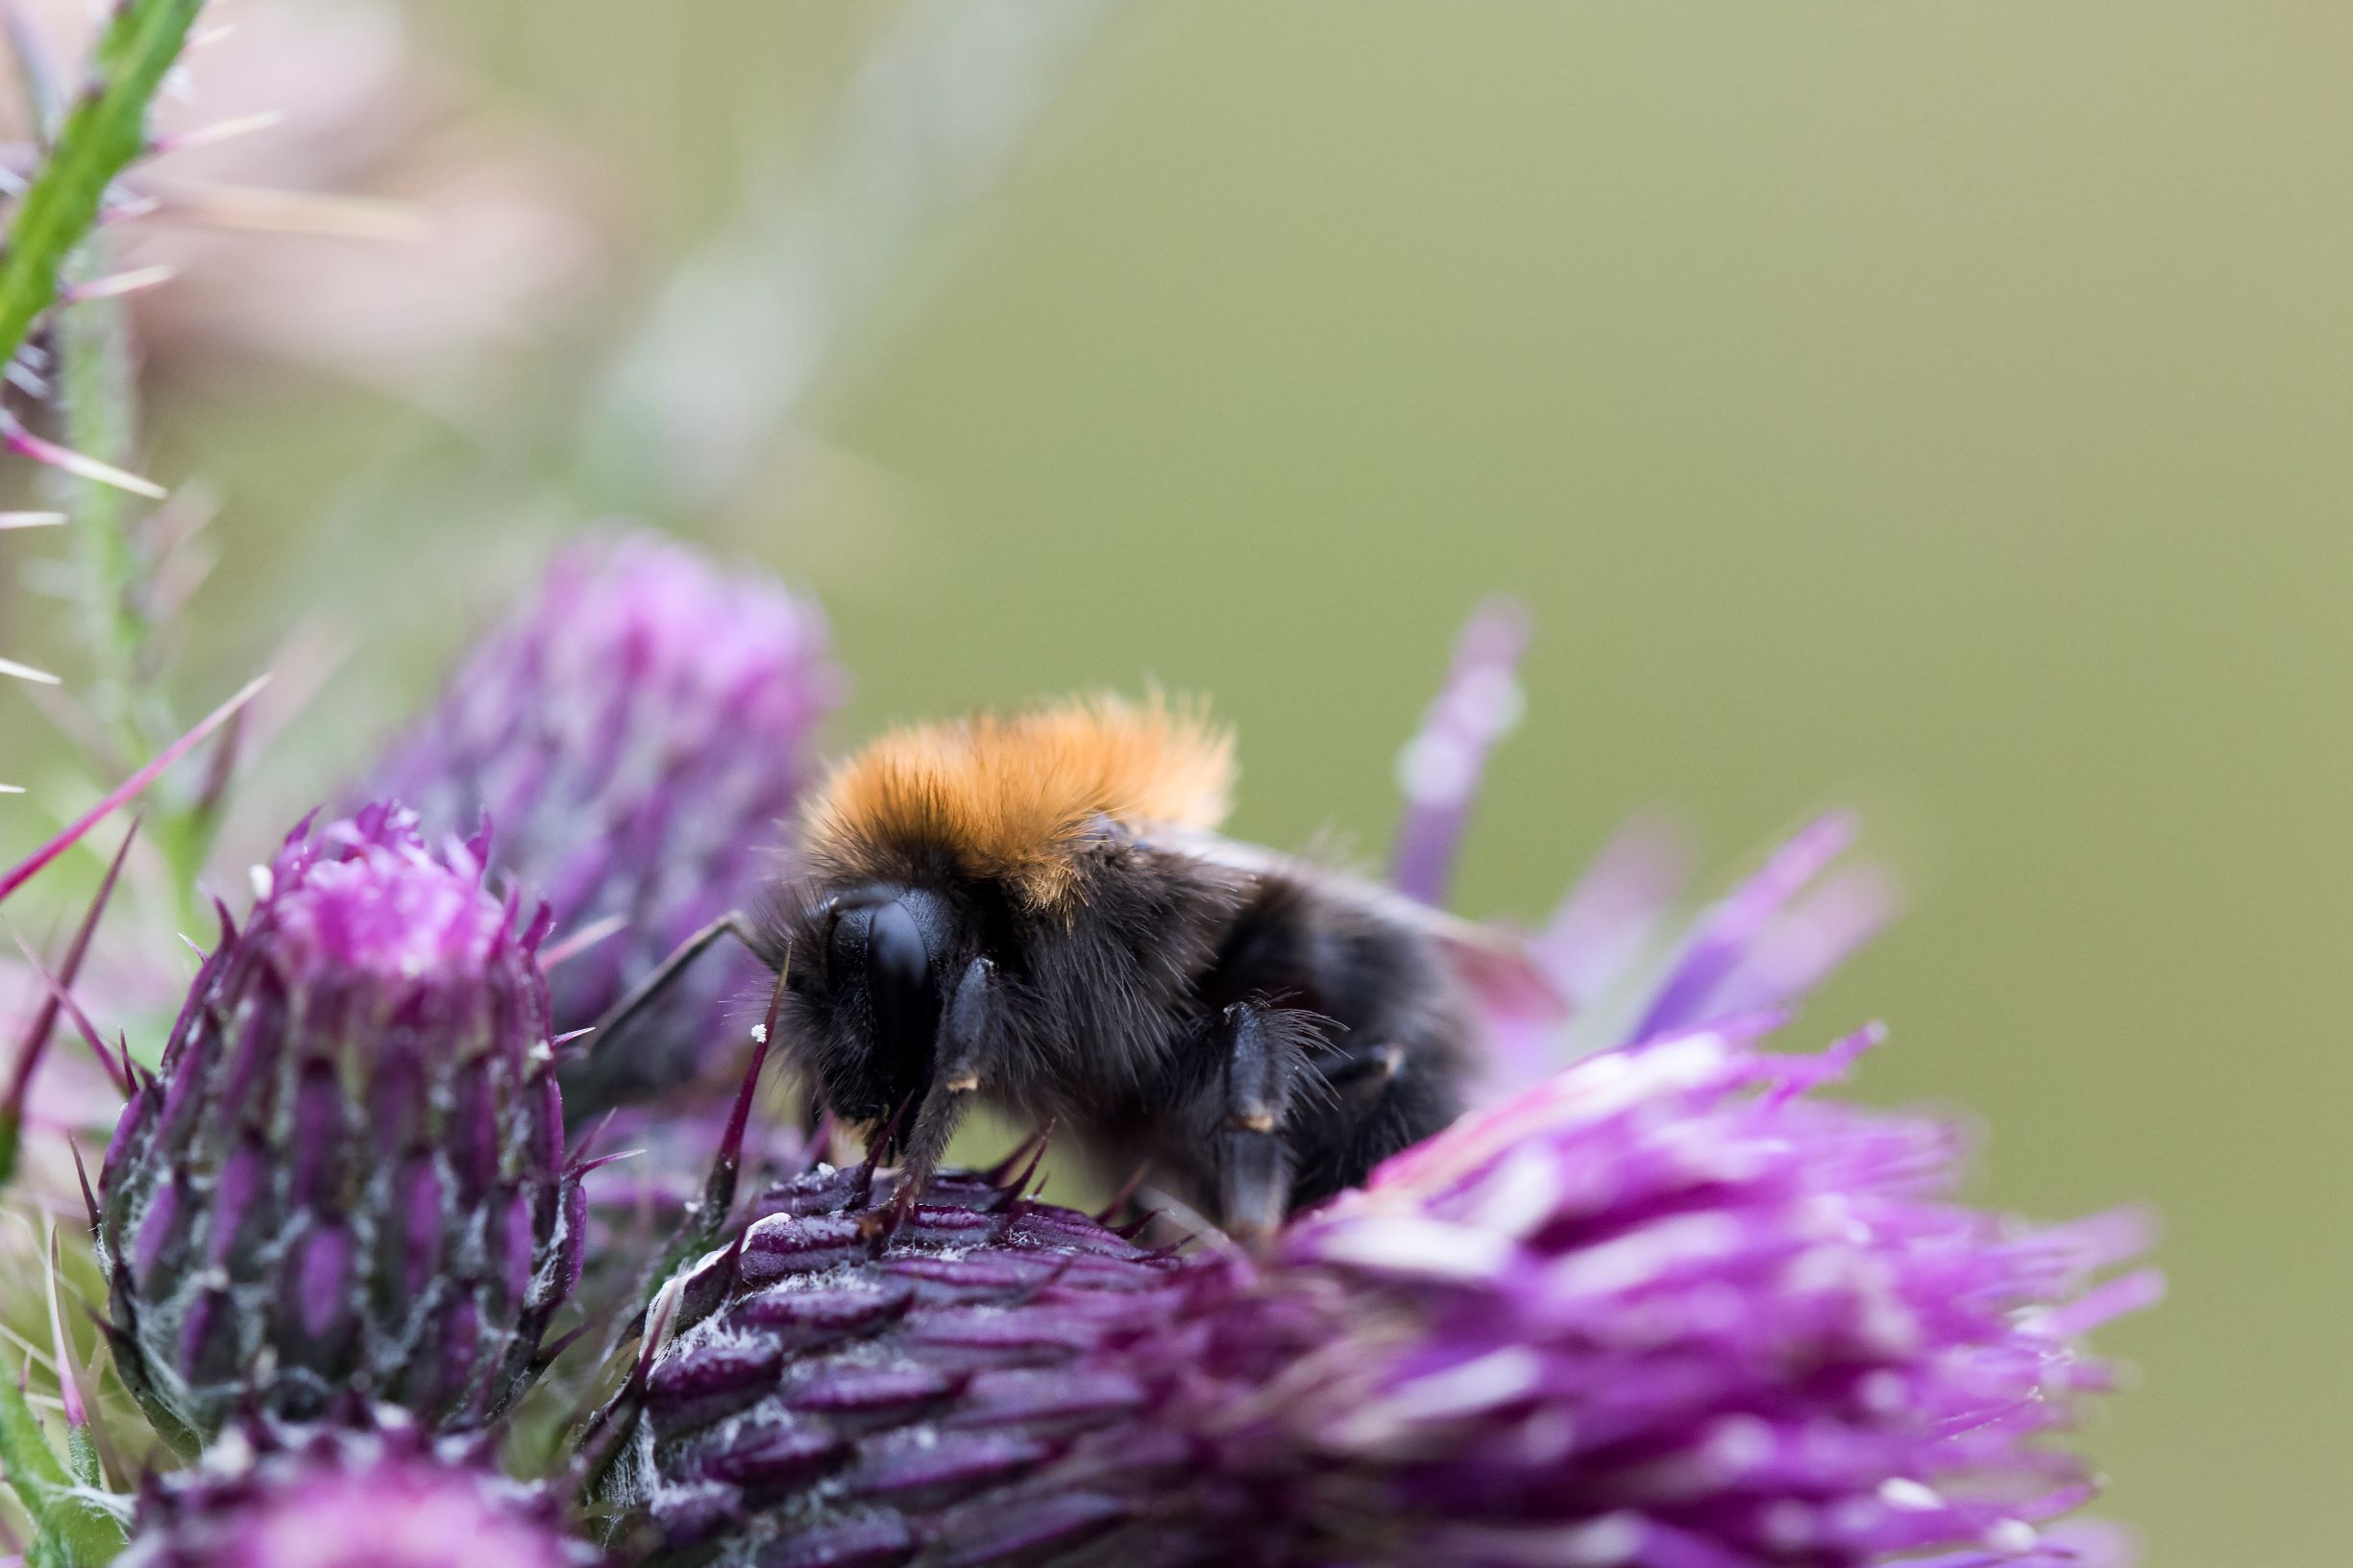 Tree bumblebees have the Falls of Clyde buzzing